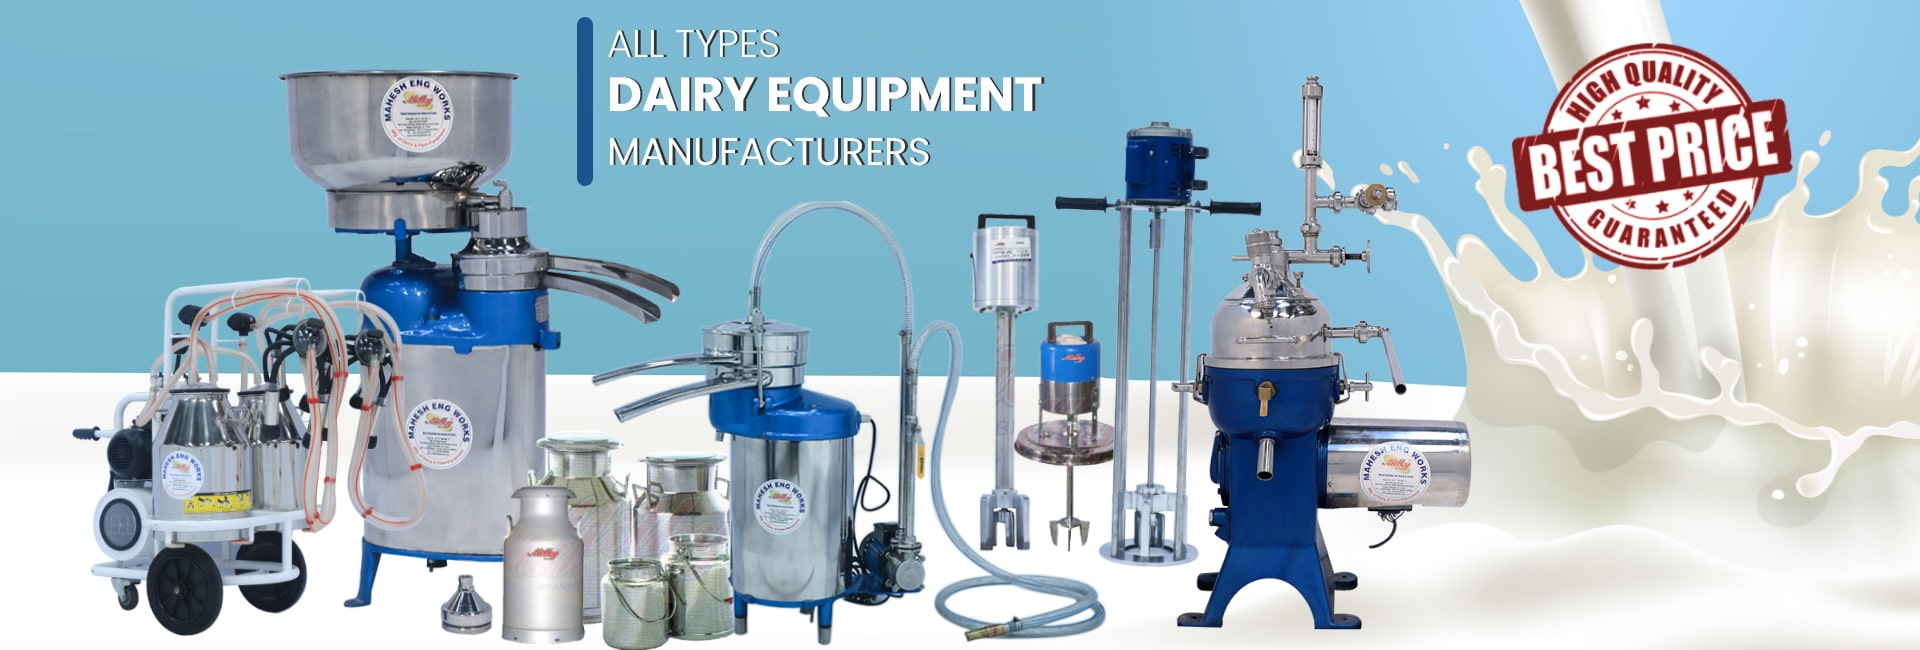 all types of dairy equipment manufacturer